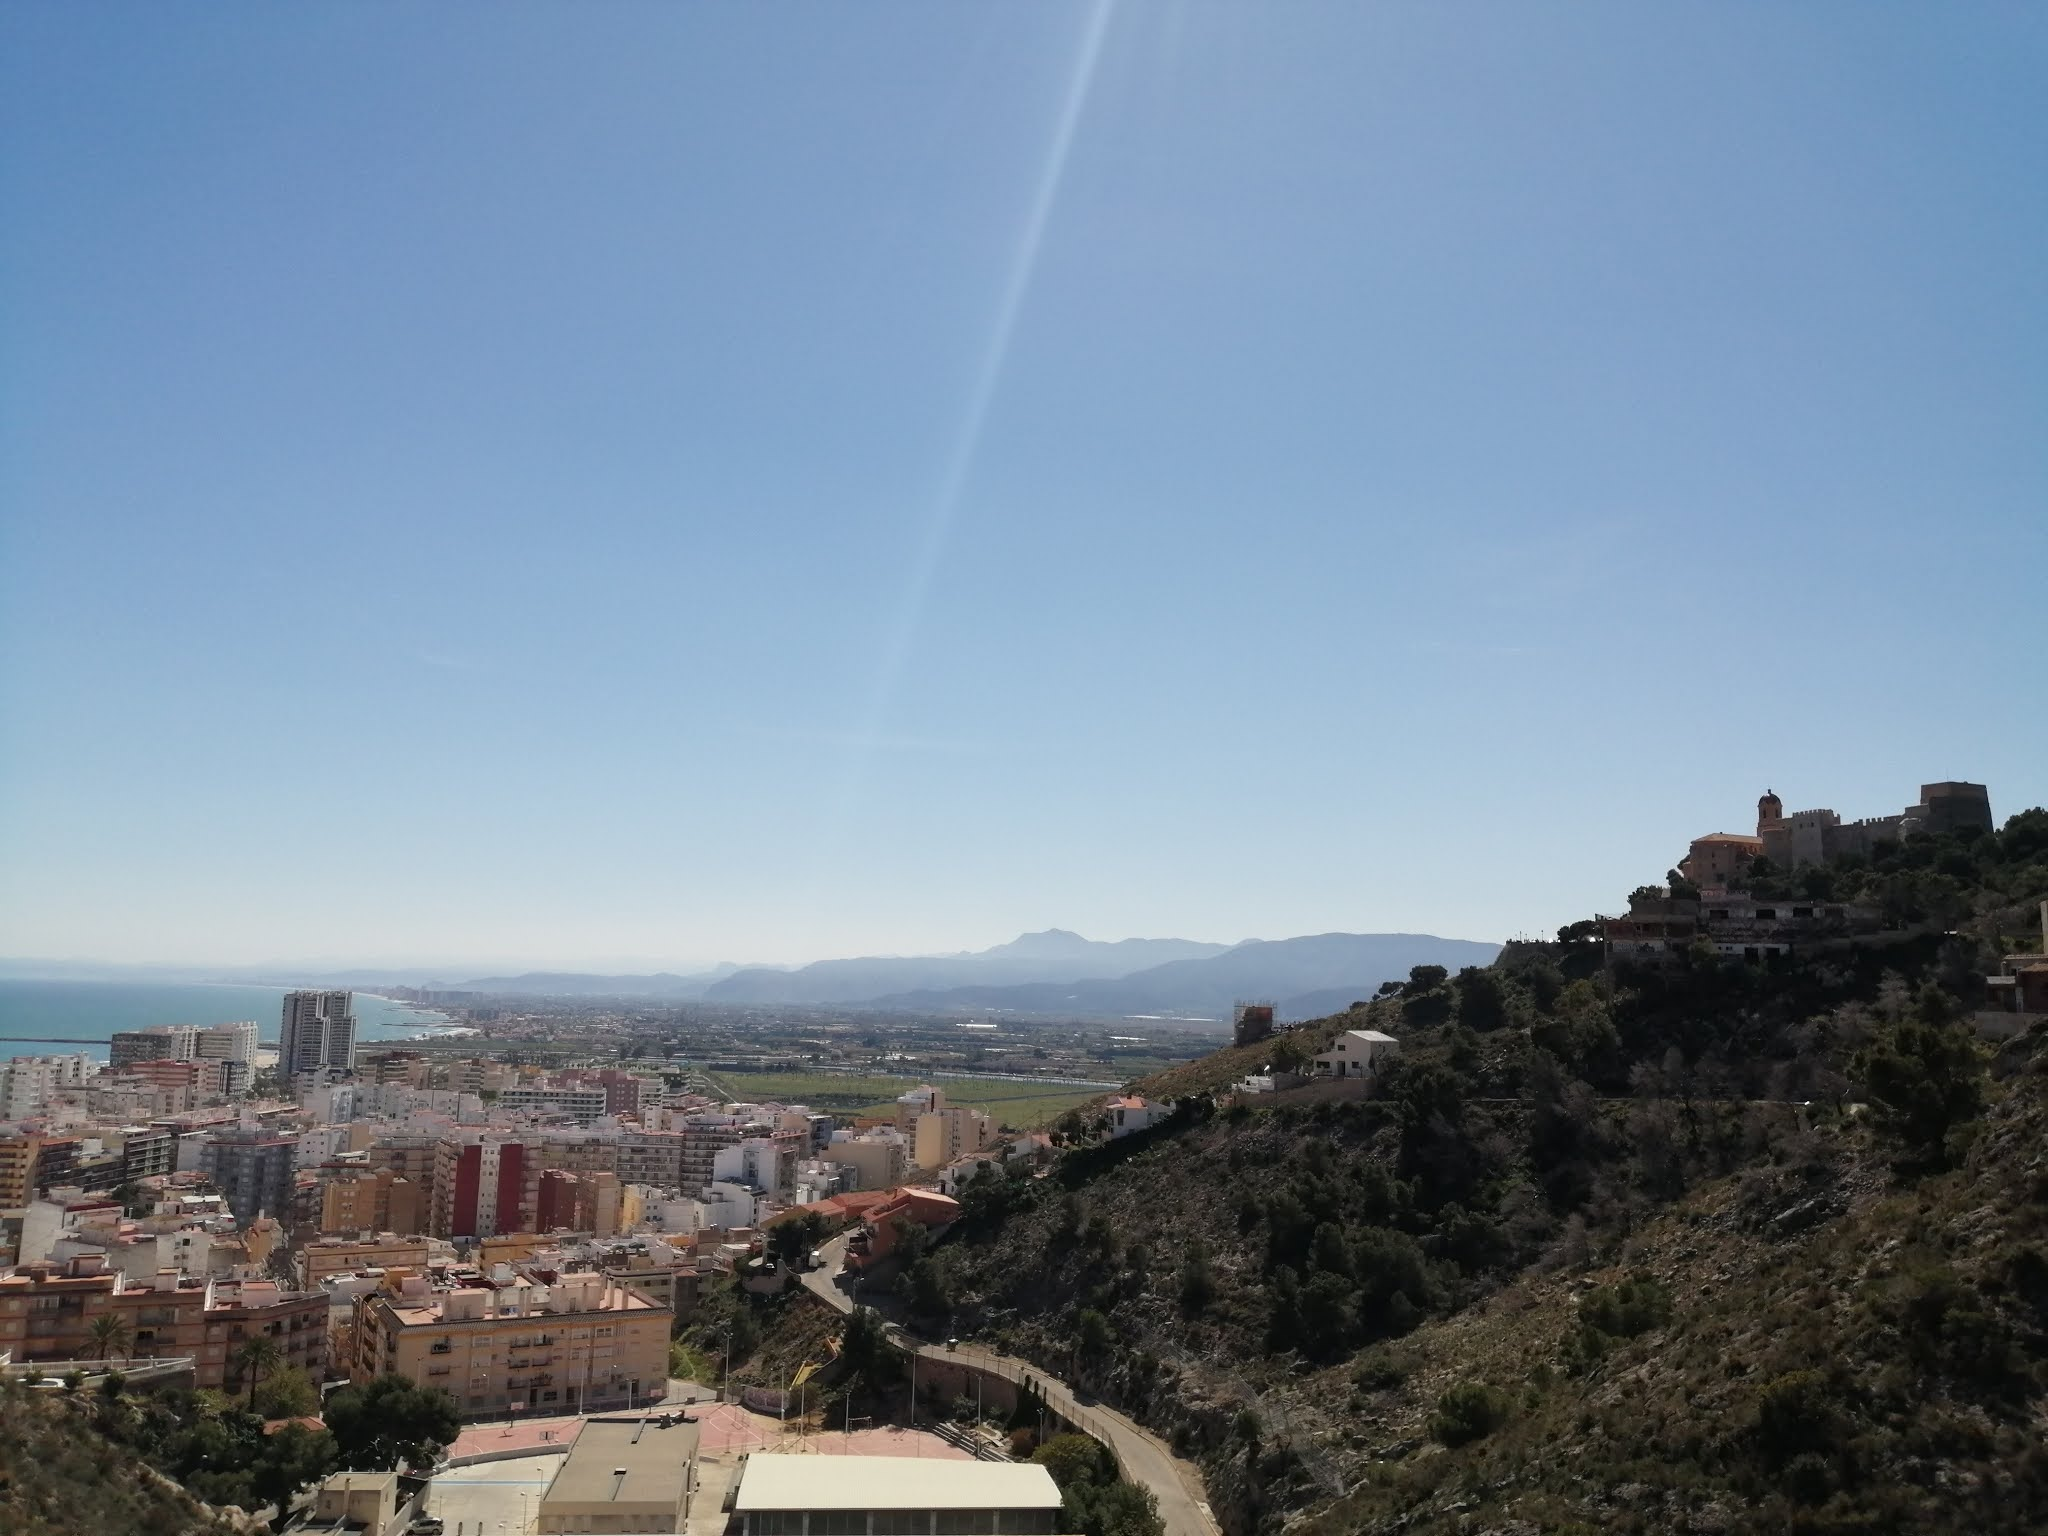 View of Cullera, its castle and the Gulf of Valencia to the south